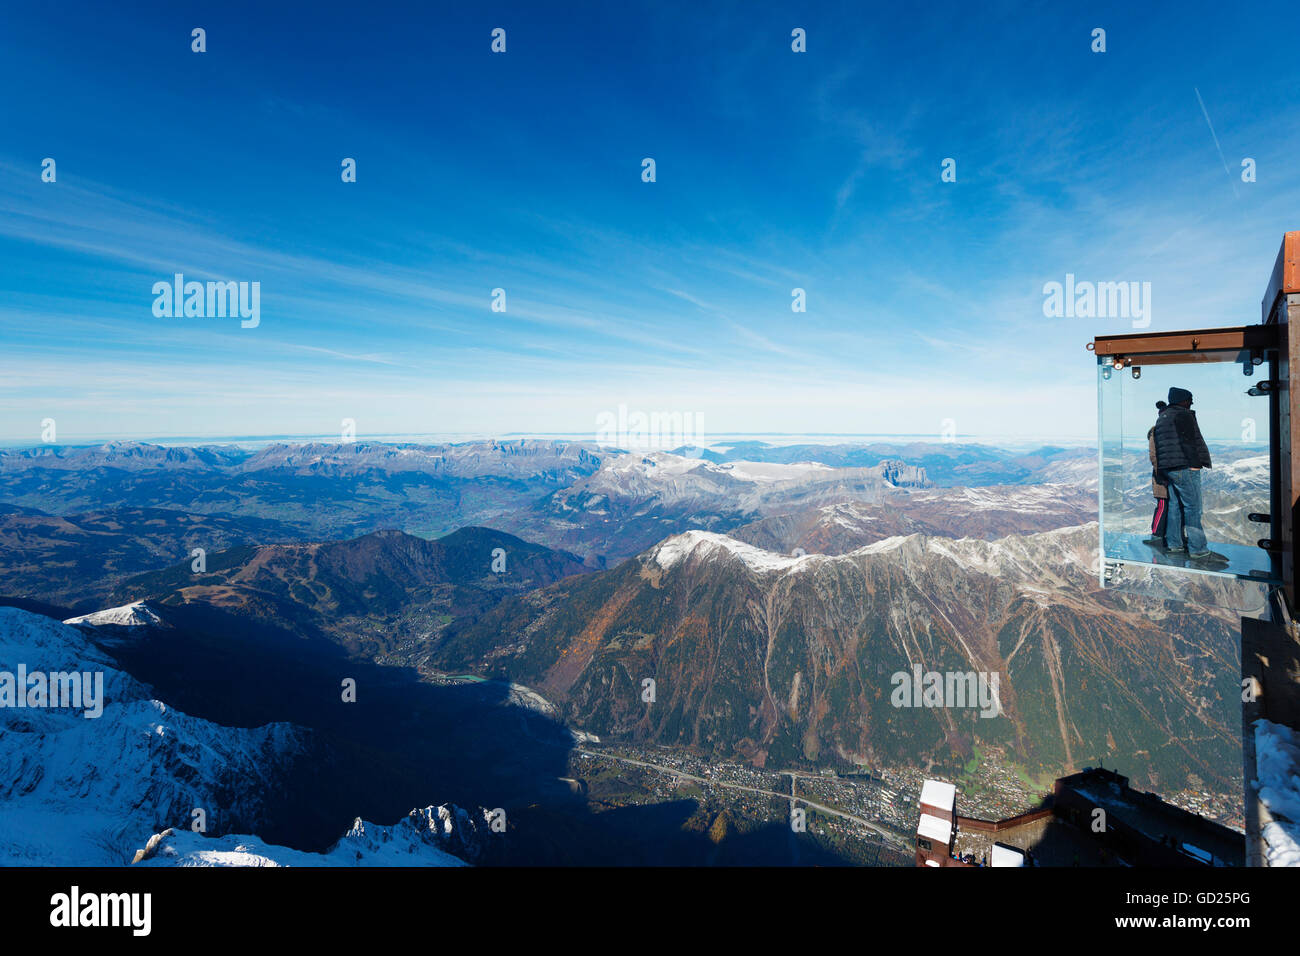 Into the Void viewing platform on Aiguille du Midi, Chamonix, Rhone Alpes, Haute Savoie, French Alps, France, Europe - Stock Image